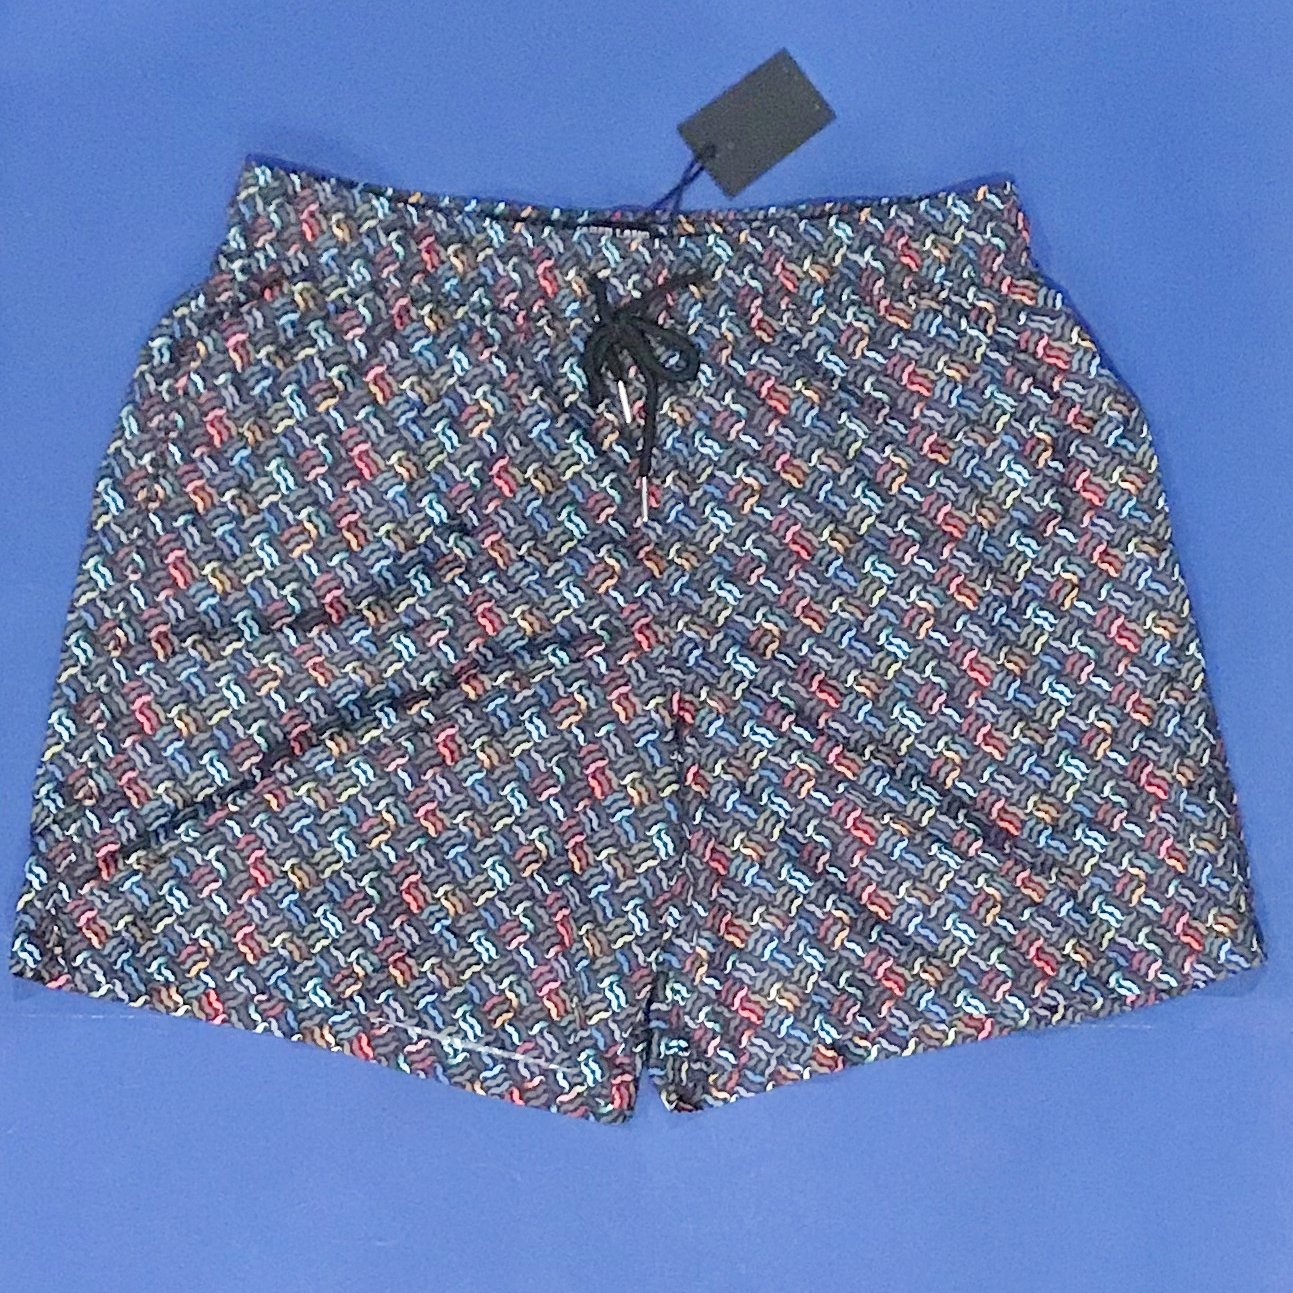 NWT Jared Lang Men's Black w/Multi-Colored Mustache Print Swim Trunks - XL